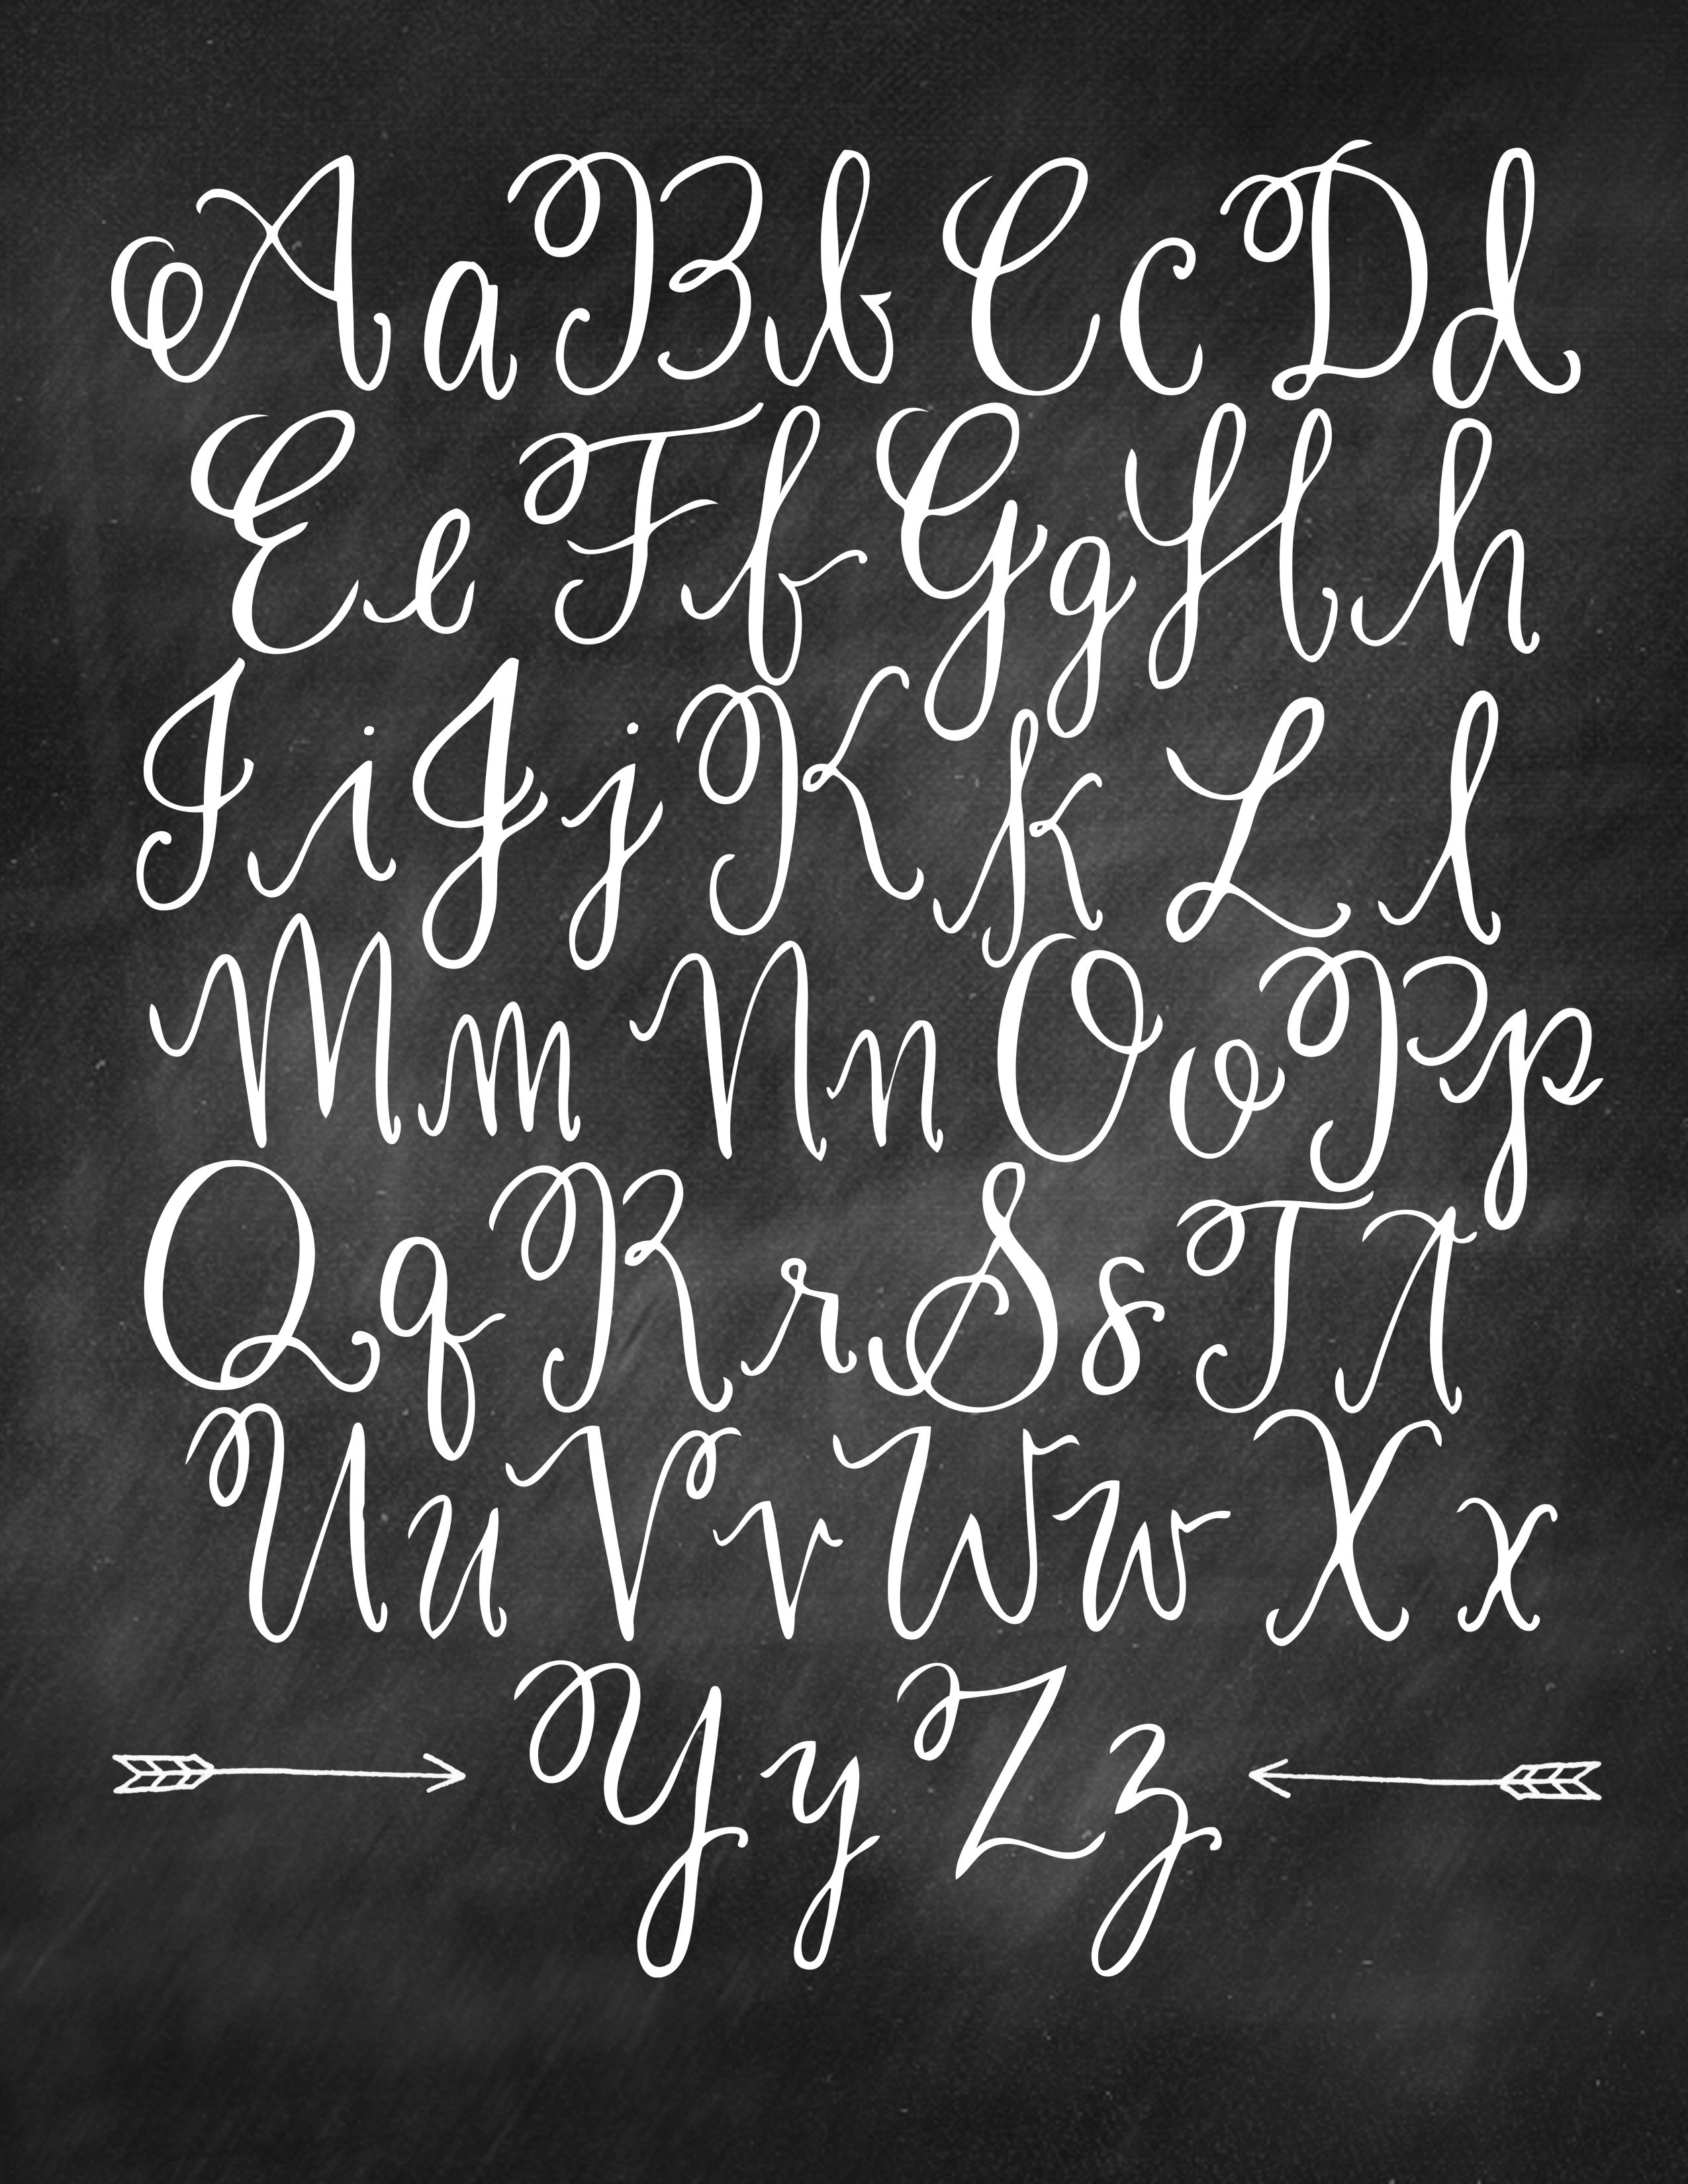 Chalkboard Alphabet By Virginia Lucas Hart Journal Hand Lettering Font Easy Drawn Great For Journaling Scrapbooking Wedding